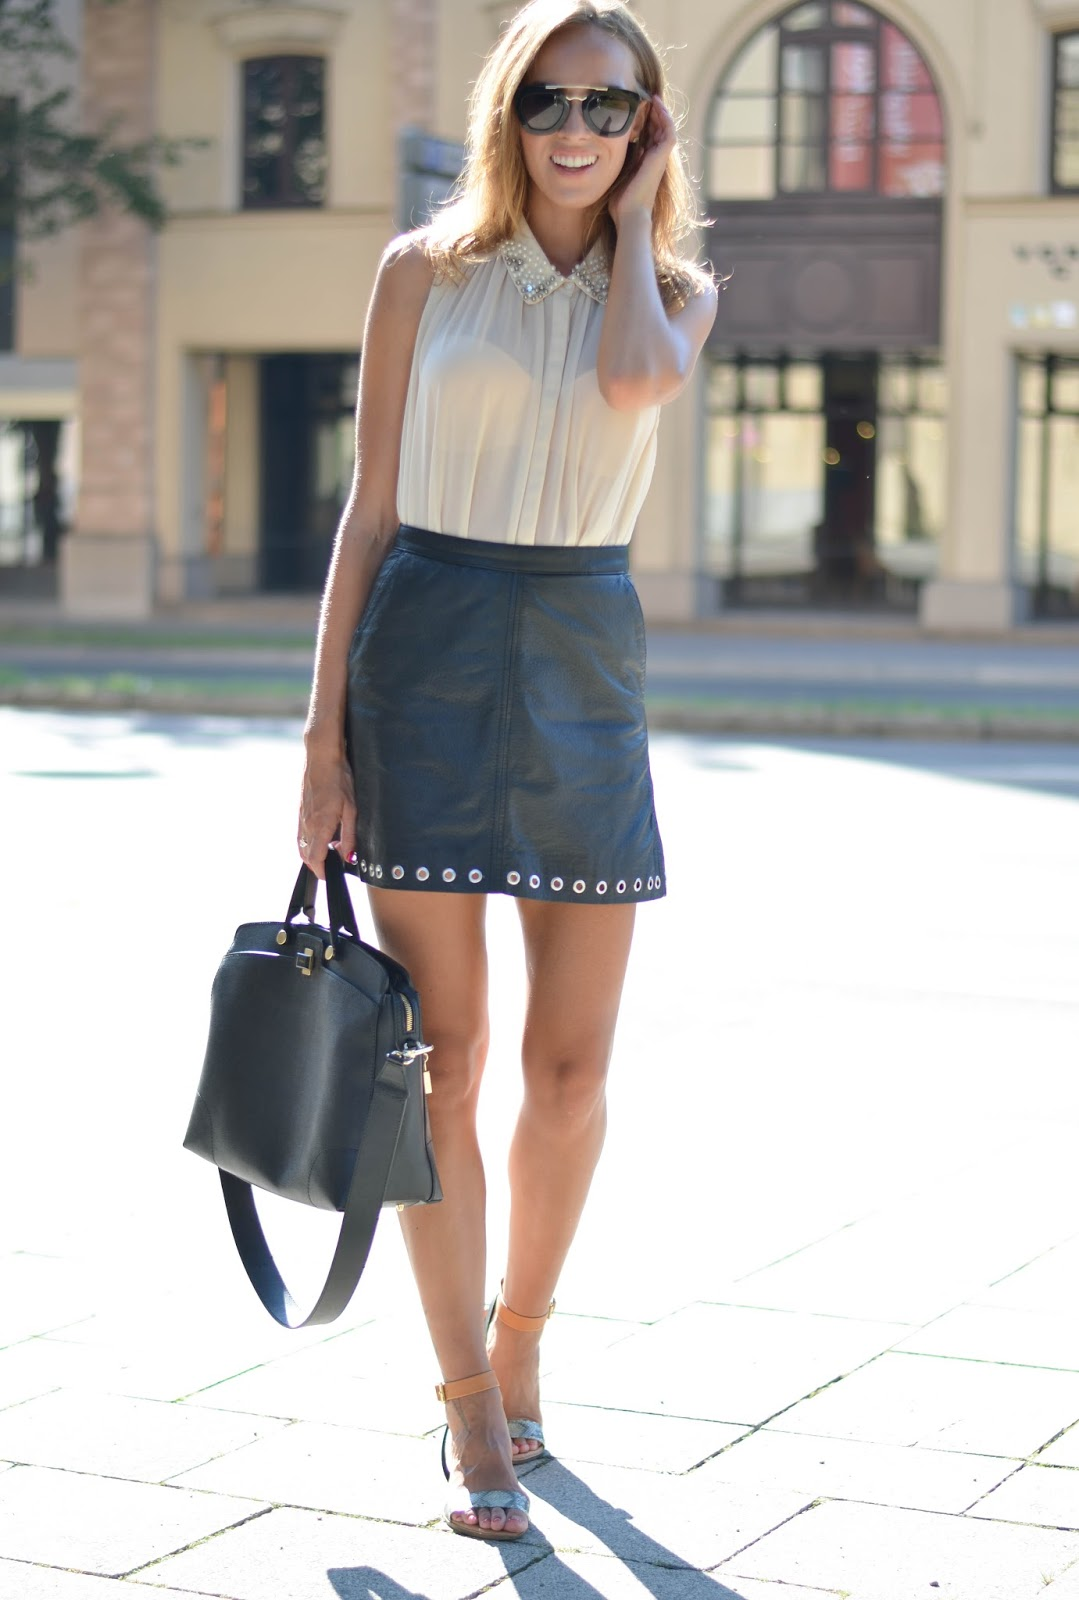 kristjaana mere black leather mini skirt outfit style fashion